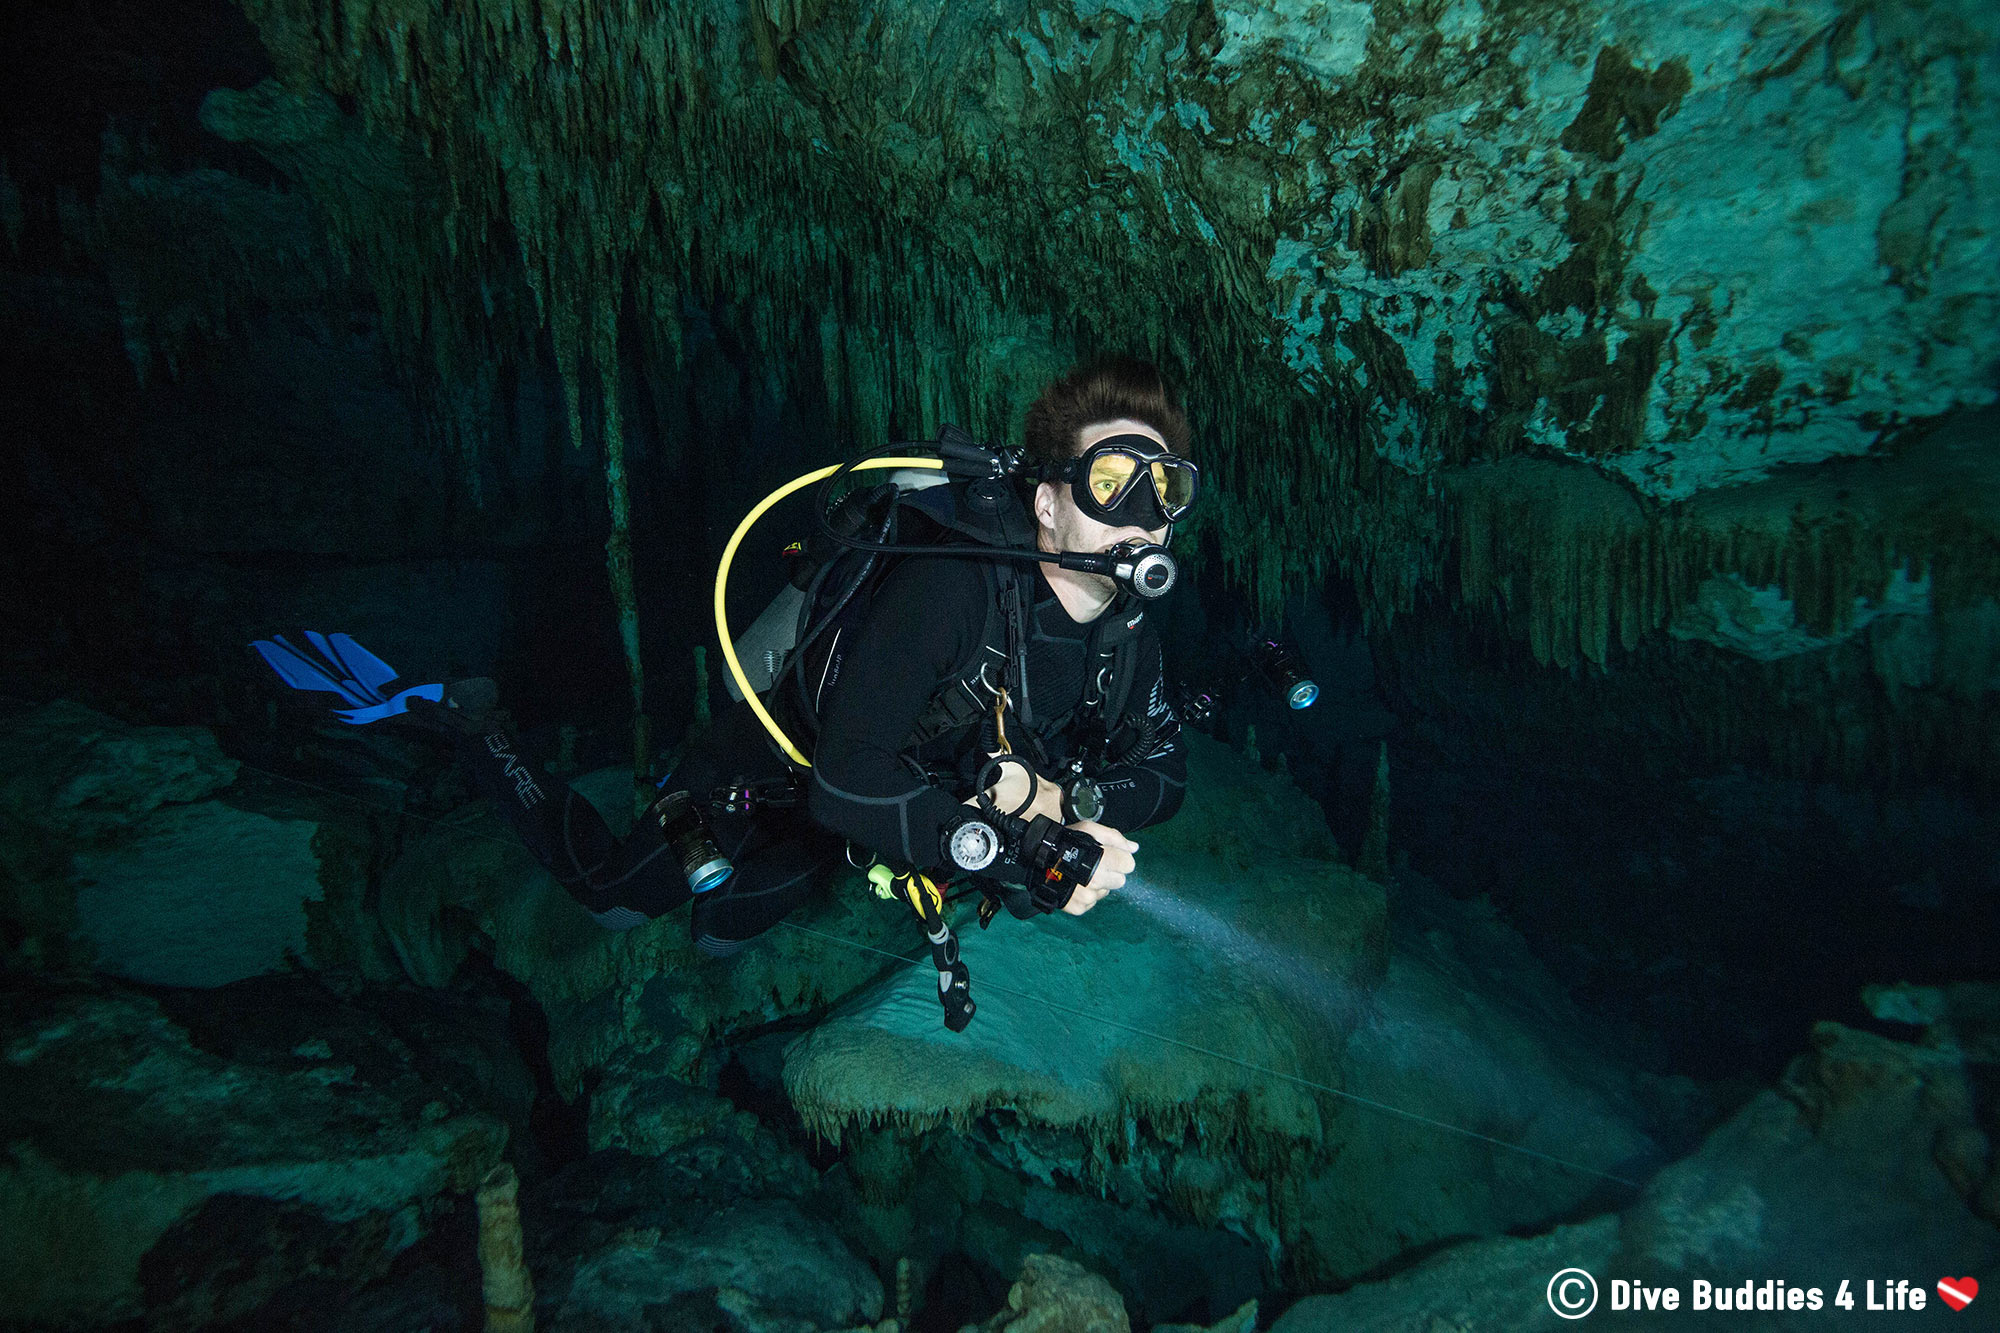 Joey Scuba Diving In The Dark Cavern's Of A Cenote In Mexico, Wide Angle Photograph